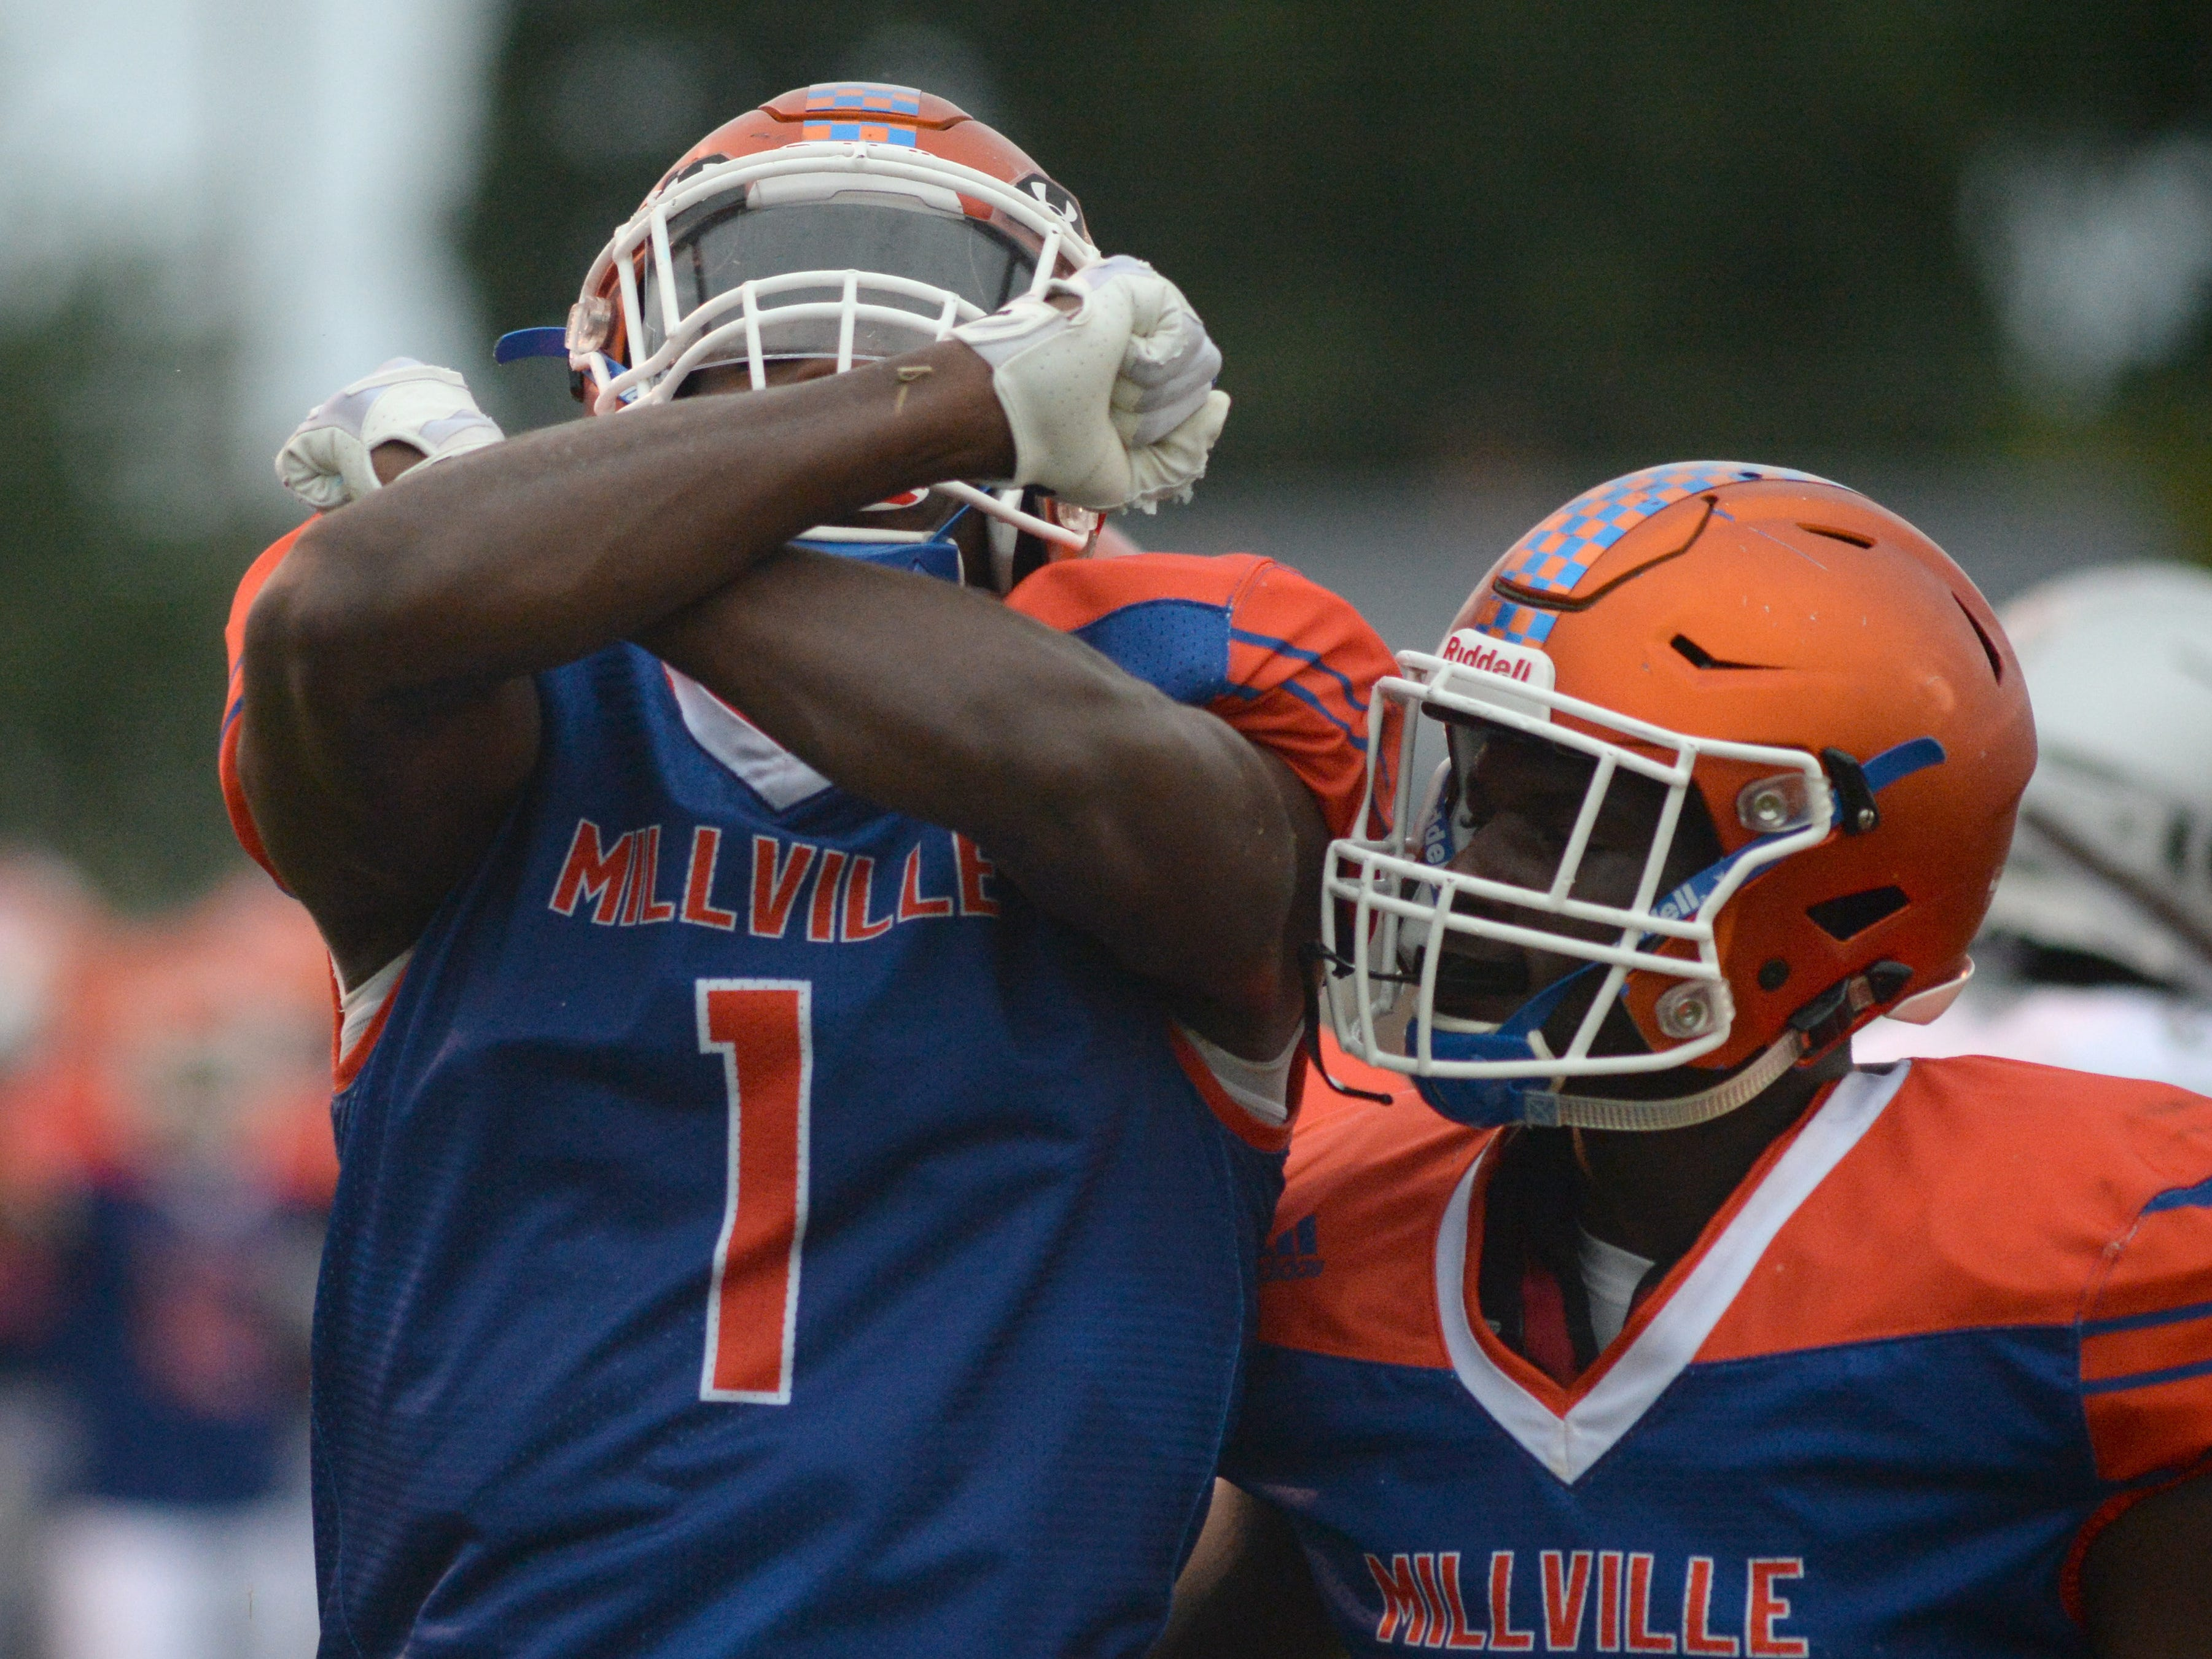 Millville's Solomon DeShields celebrates after catching a touchdown pass during the season opening football game against St. Peter's Prep at Millville Memorial High School, Friday, Aug. 31, 2018.